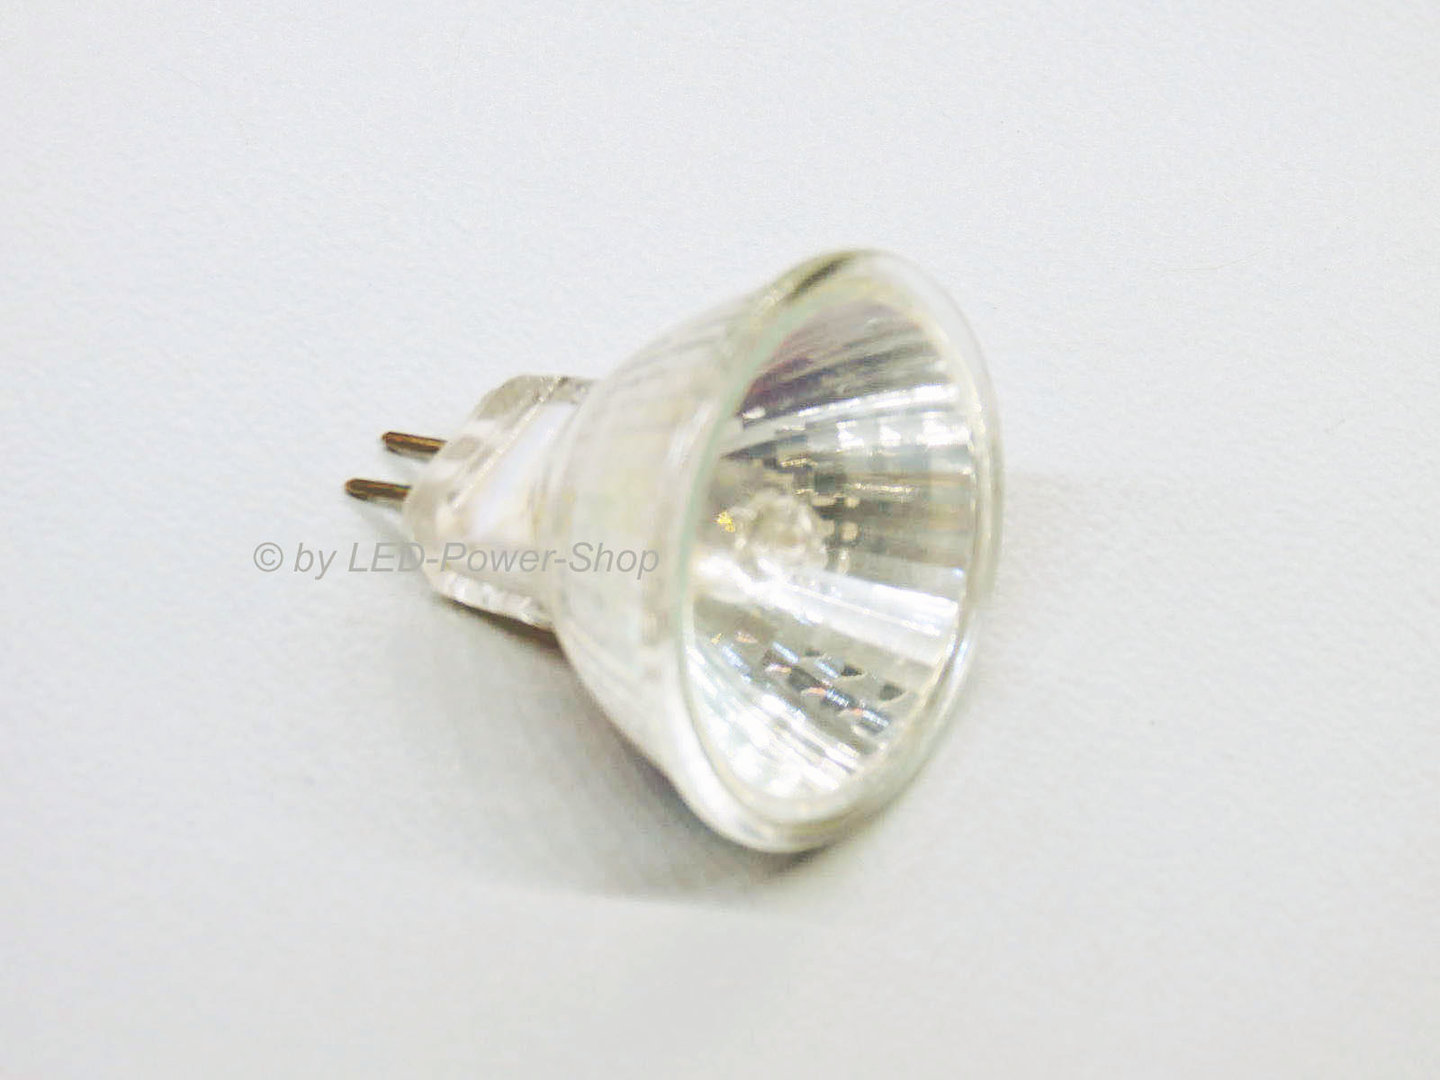 Led E14 10w Gu4 Mr11 10w Halogen Reflektorlampe